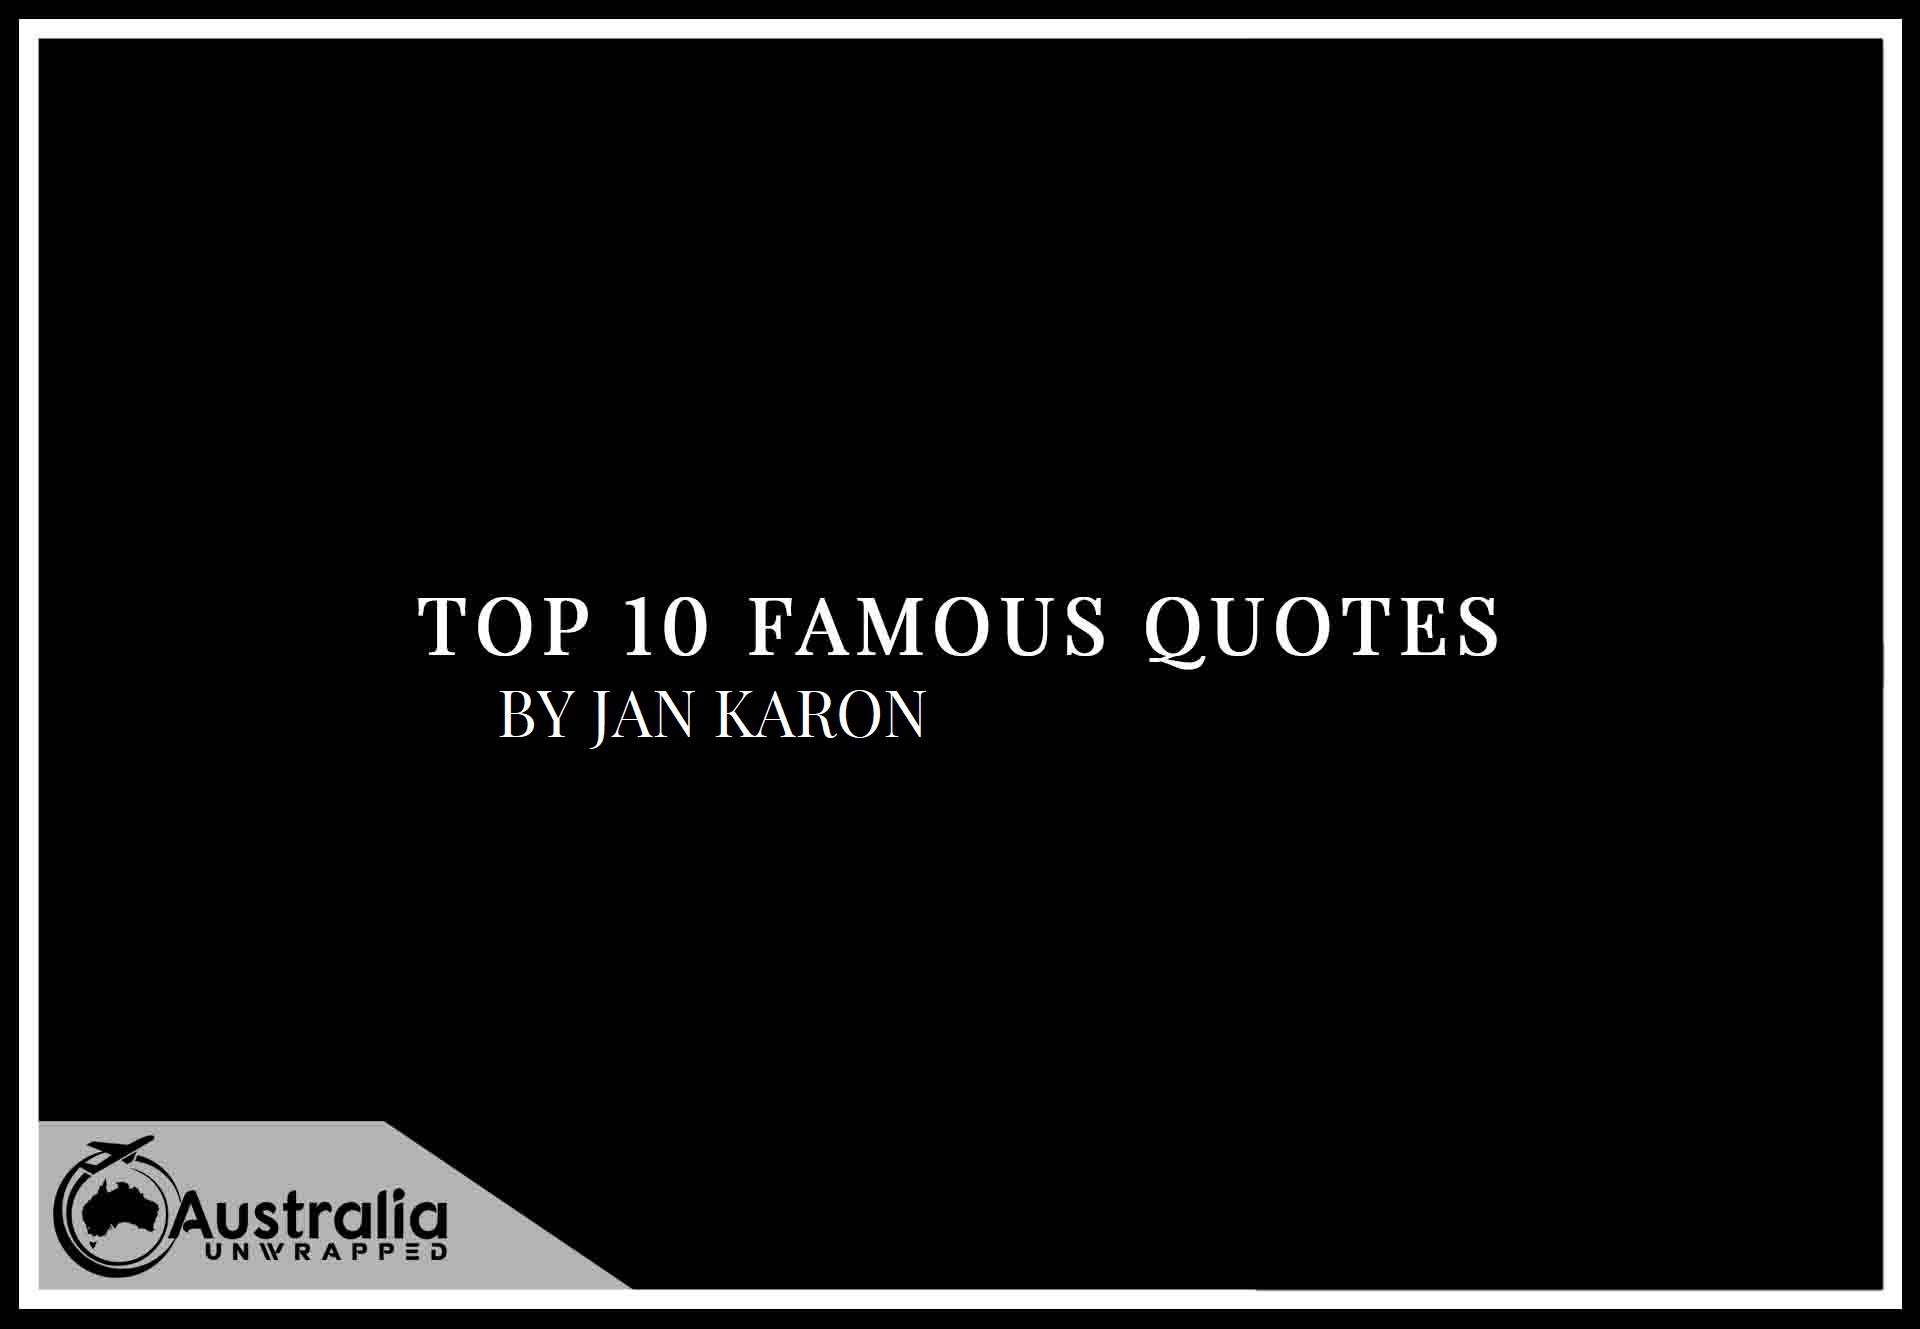 Top 10 Famous Quotes by Author Jan Karon